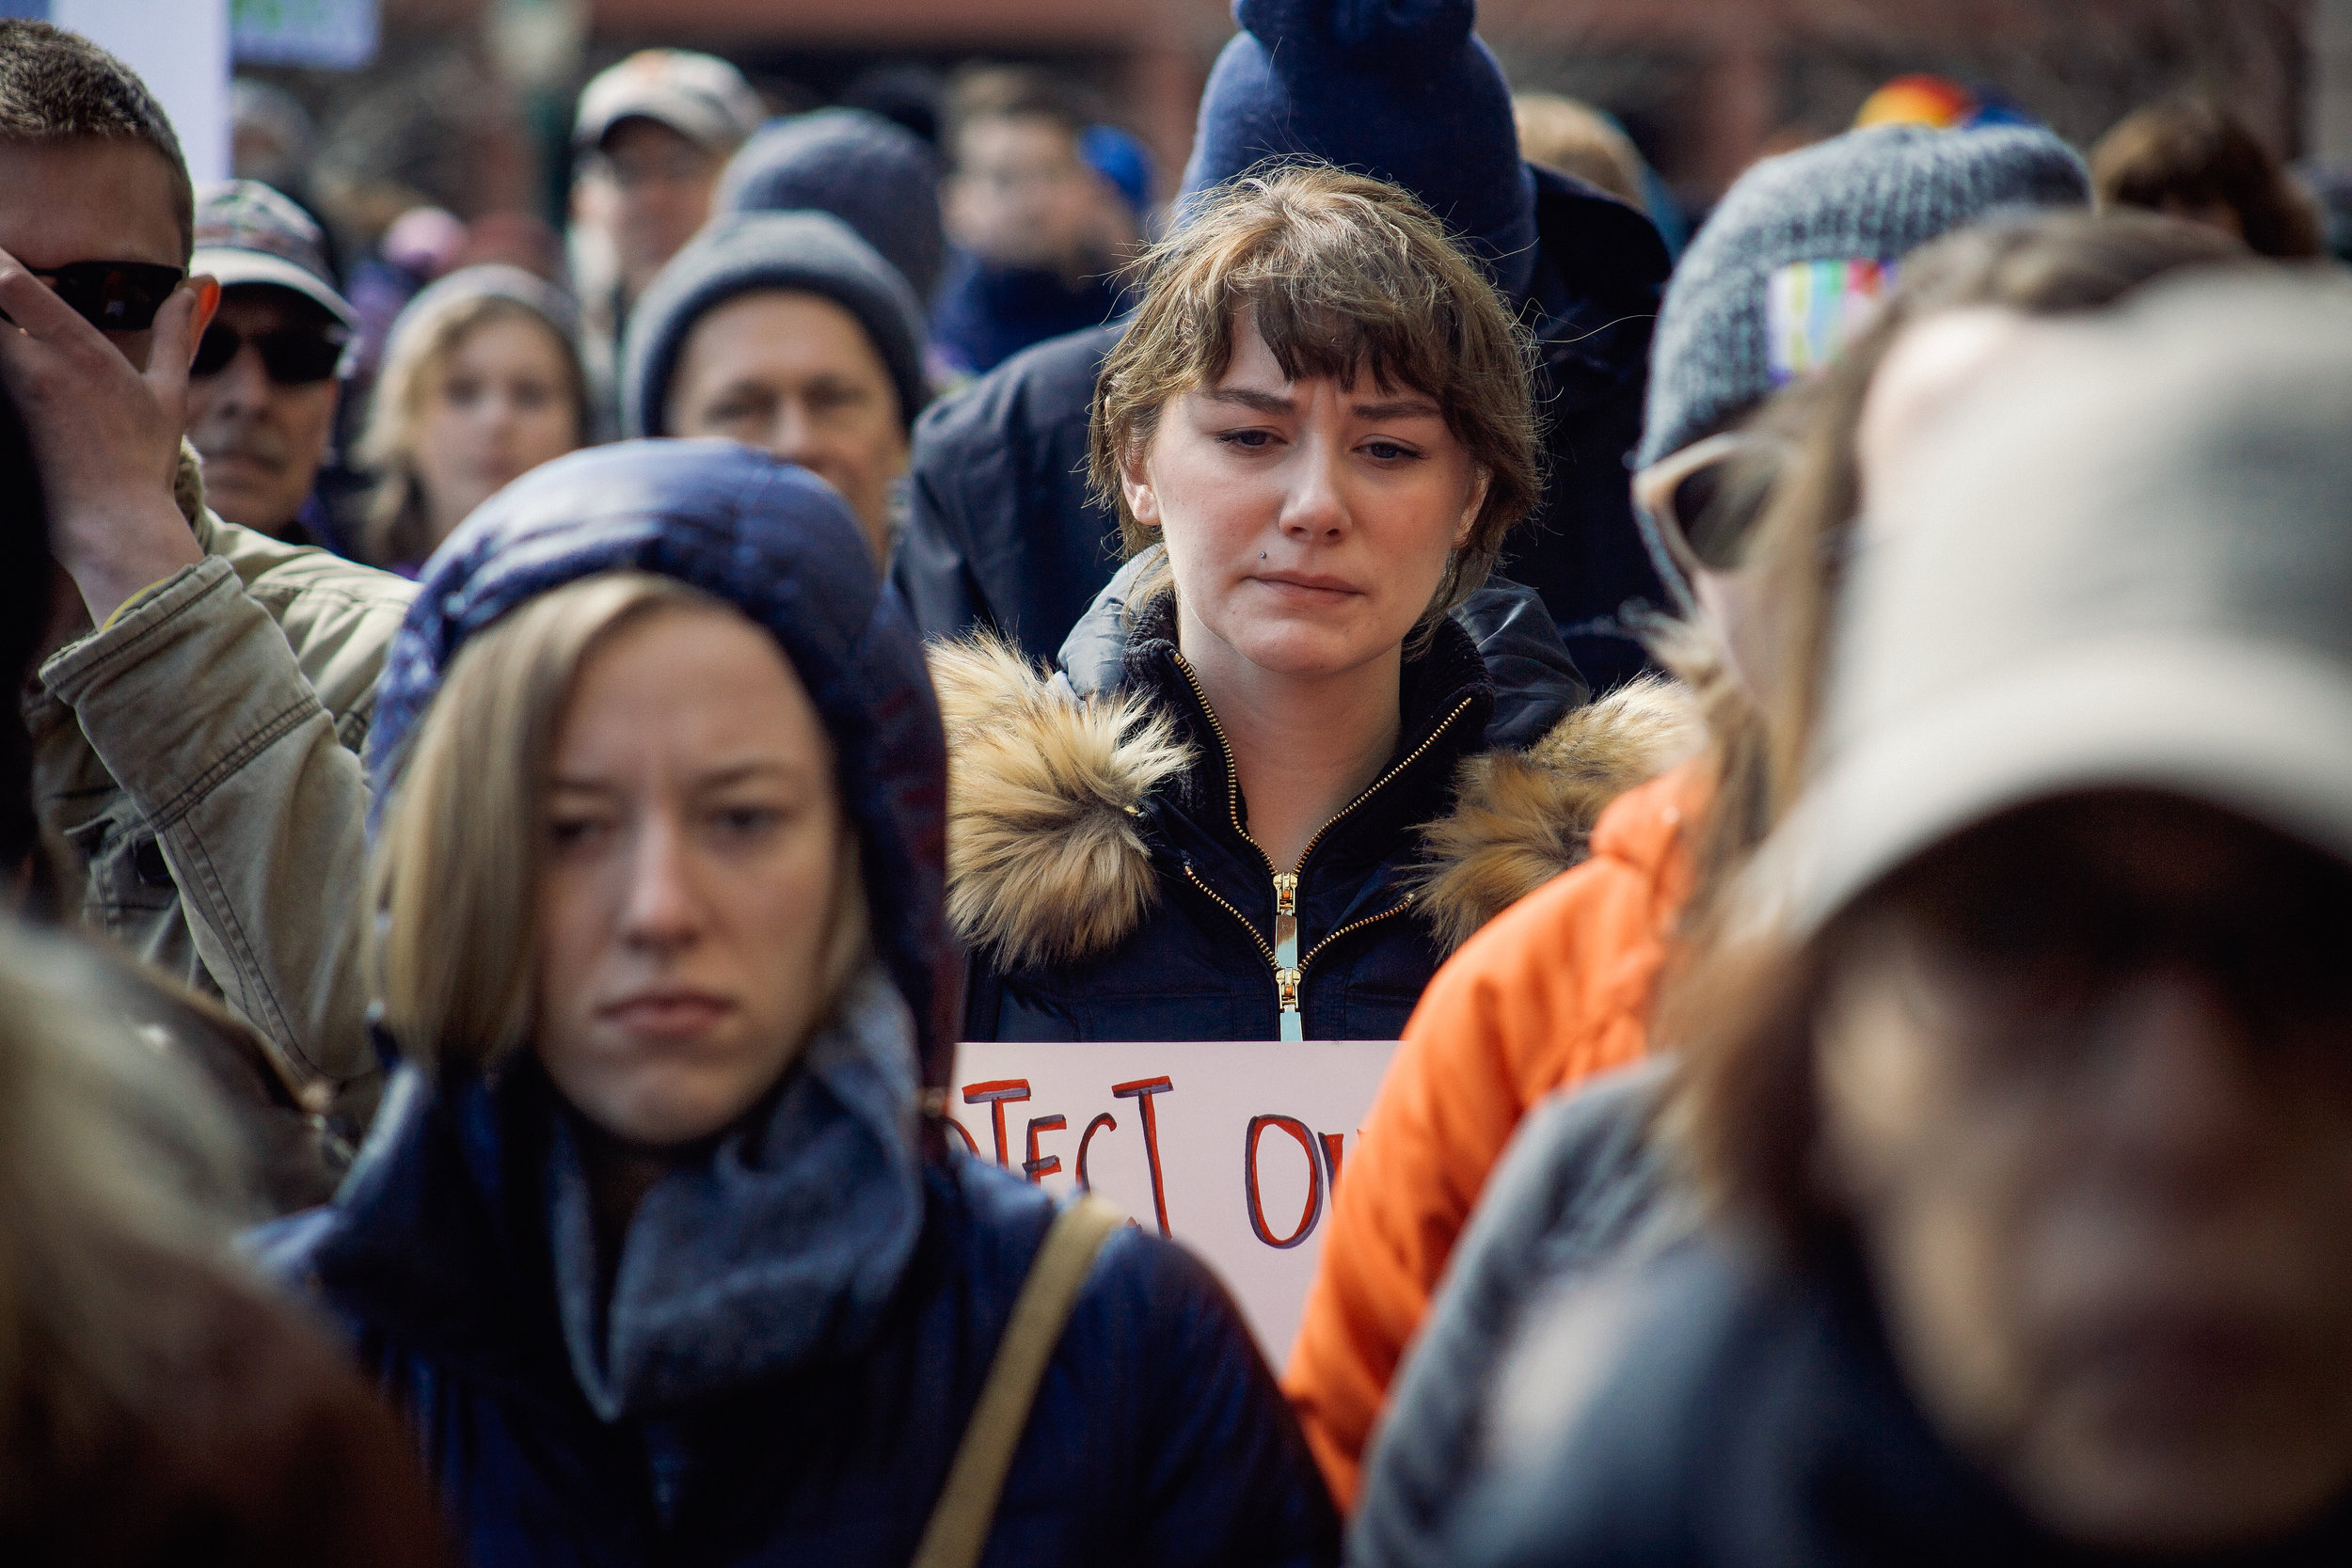 March For Our Lives in Downtown Syracuse. Photo by Romy Weidner.